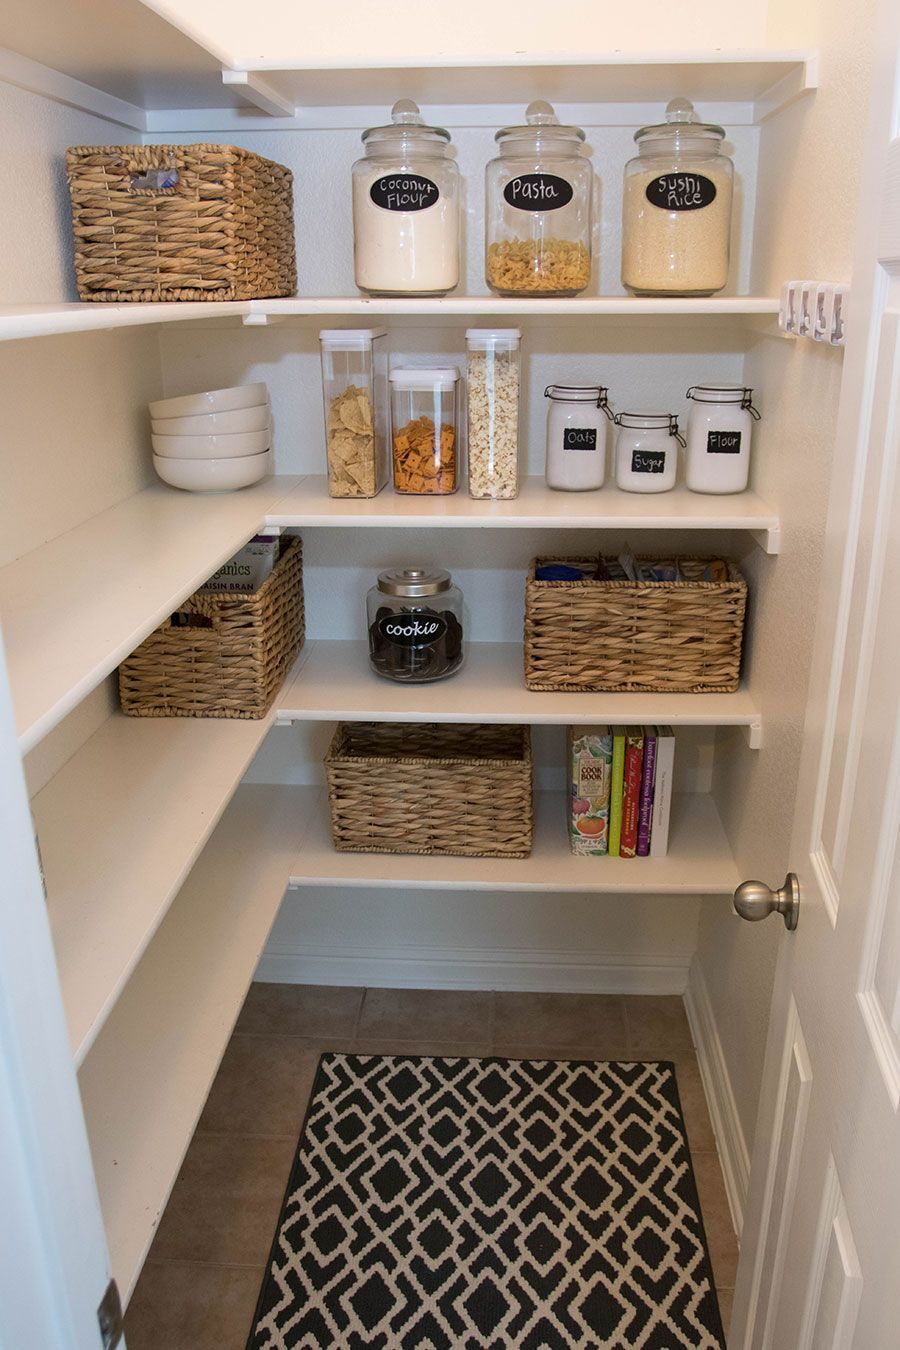 Pantry Organization Tips with At Home Stores | Pinterest ...